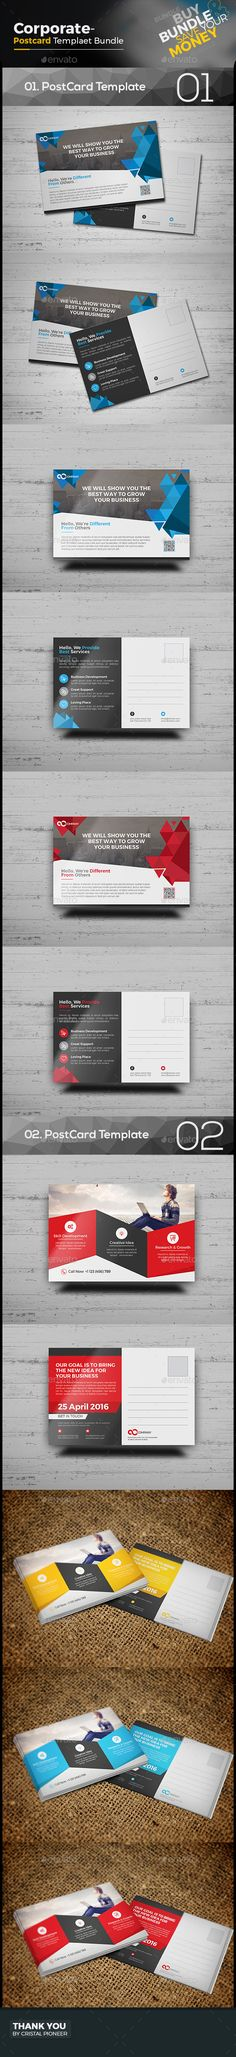 Templates and Postcards on Pinterest - corporate profile template